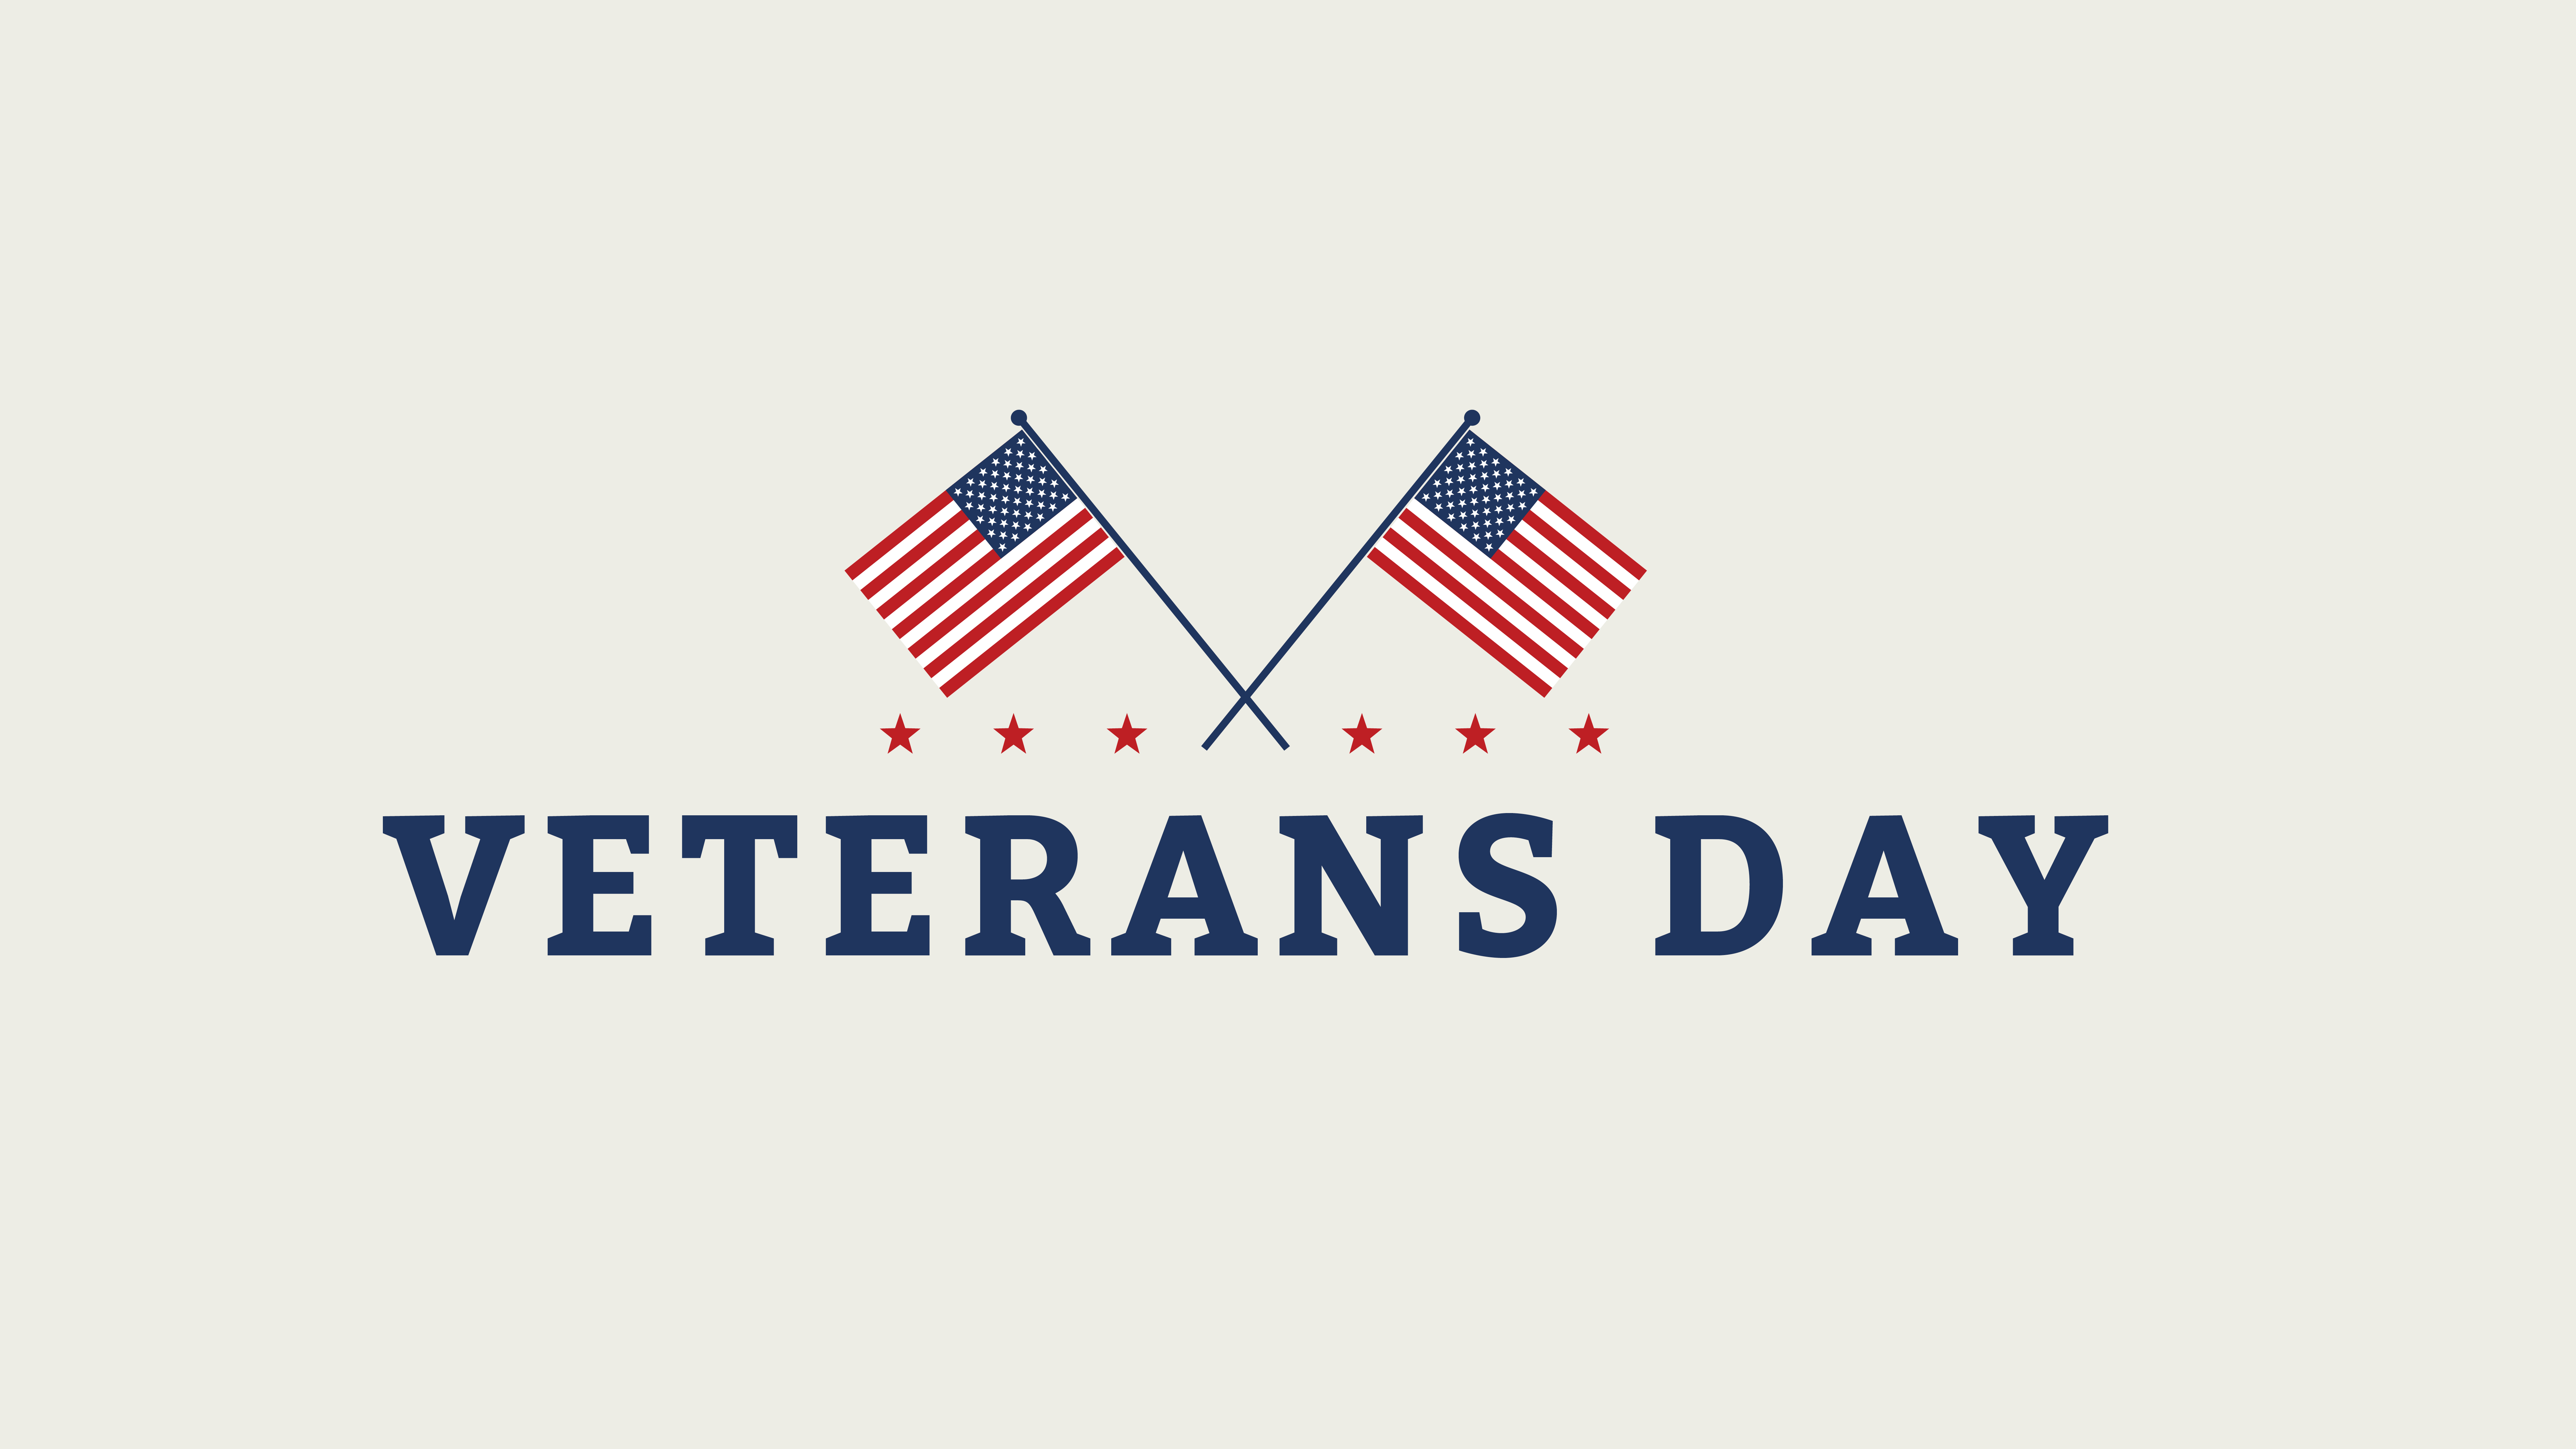 Veteran's Day - Free meal for Vets